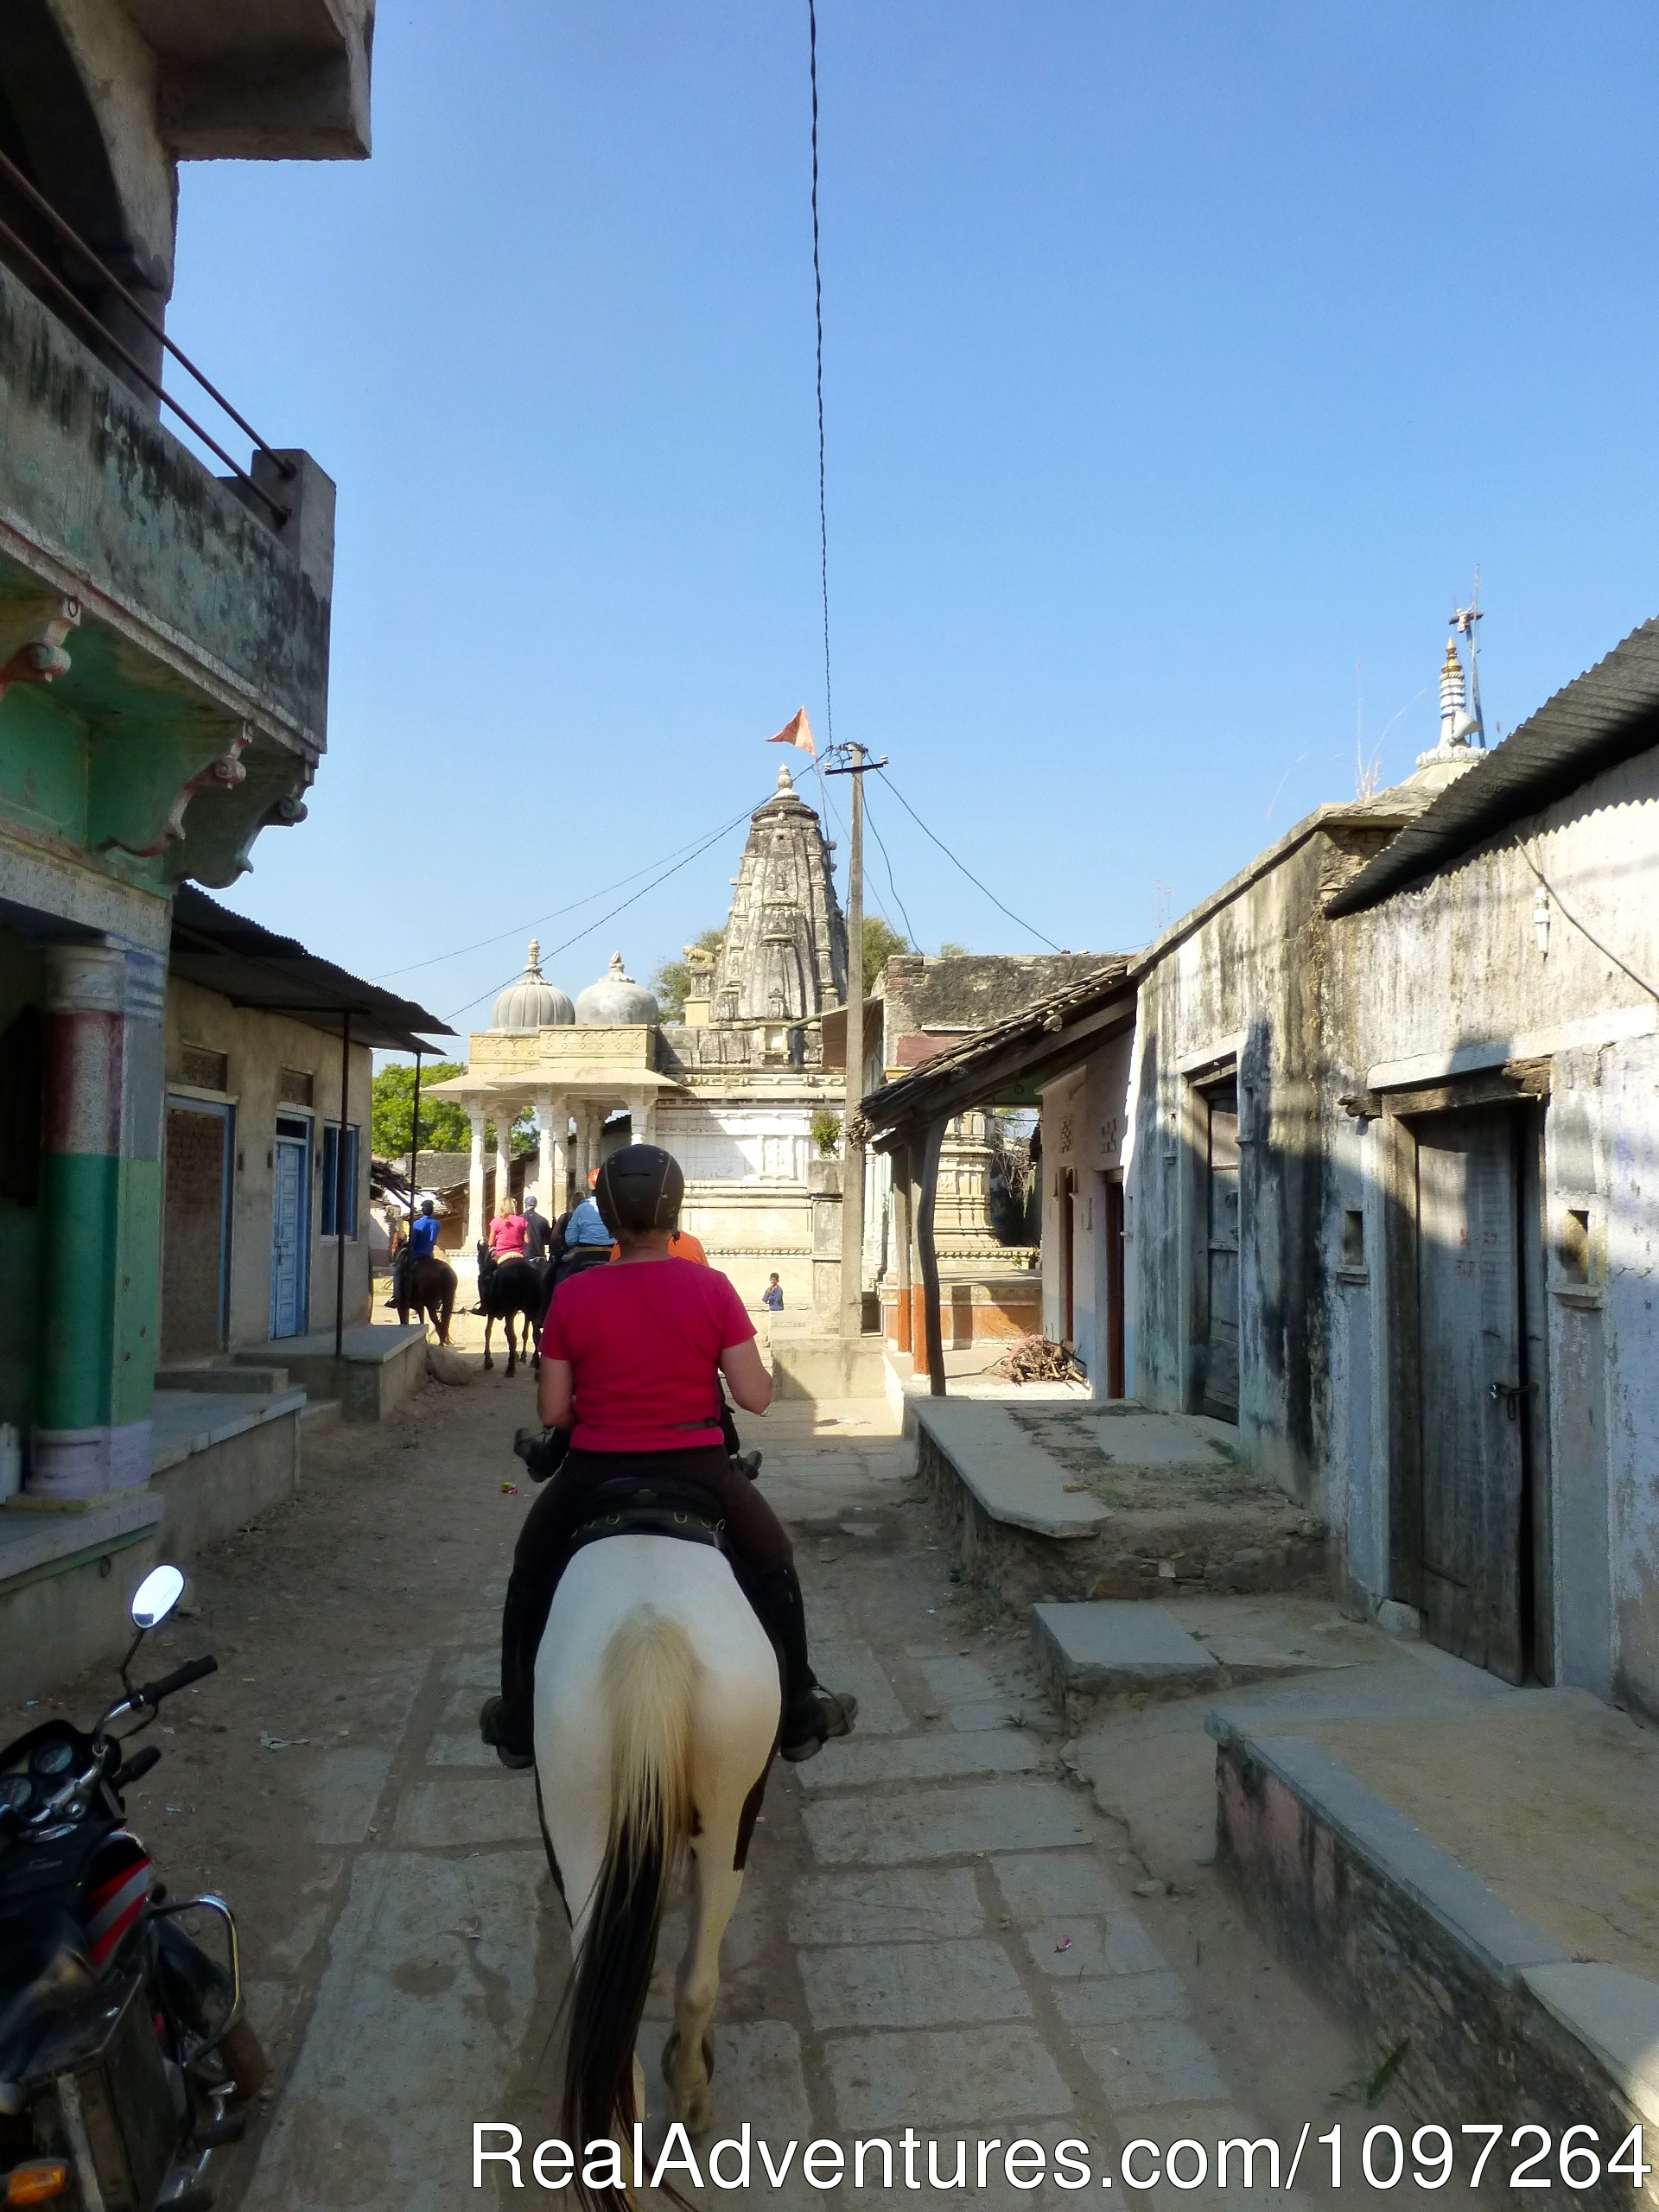 Riding through a village